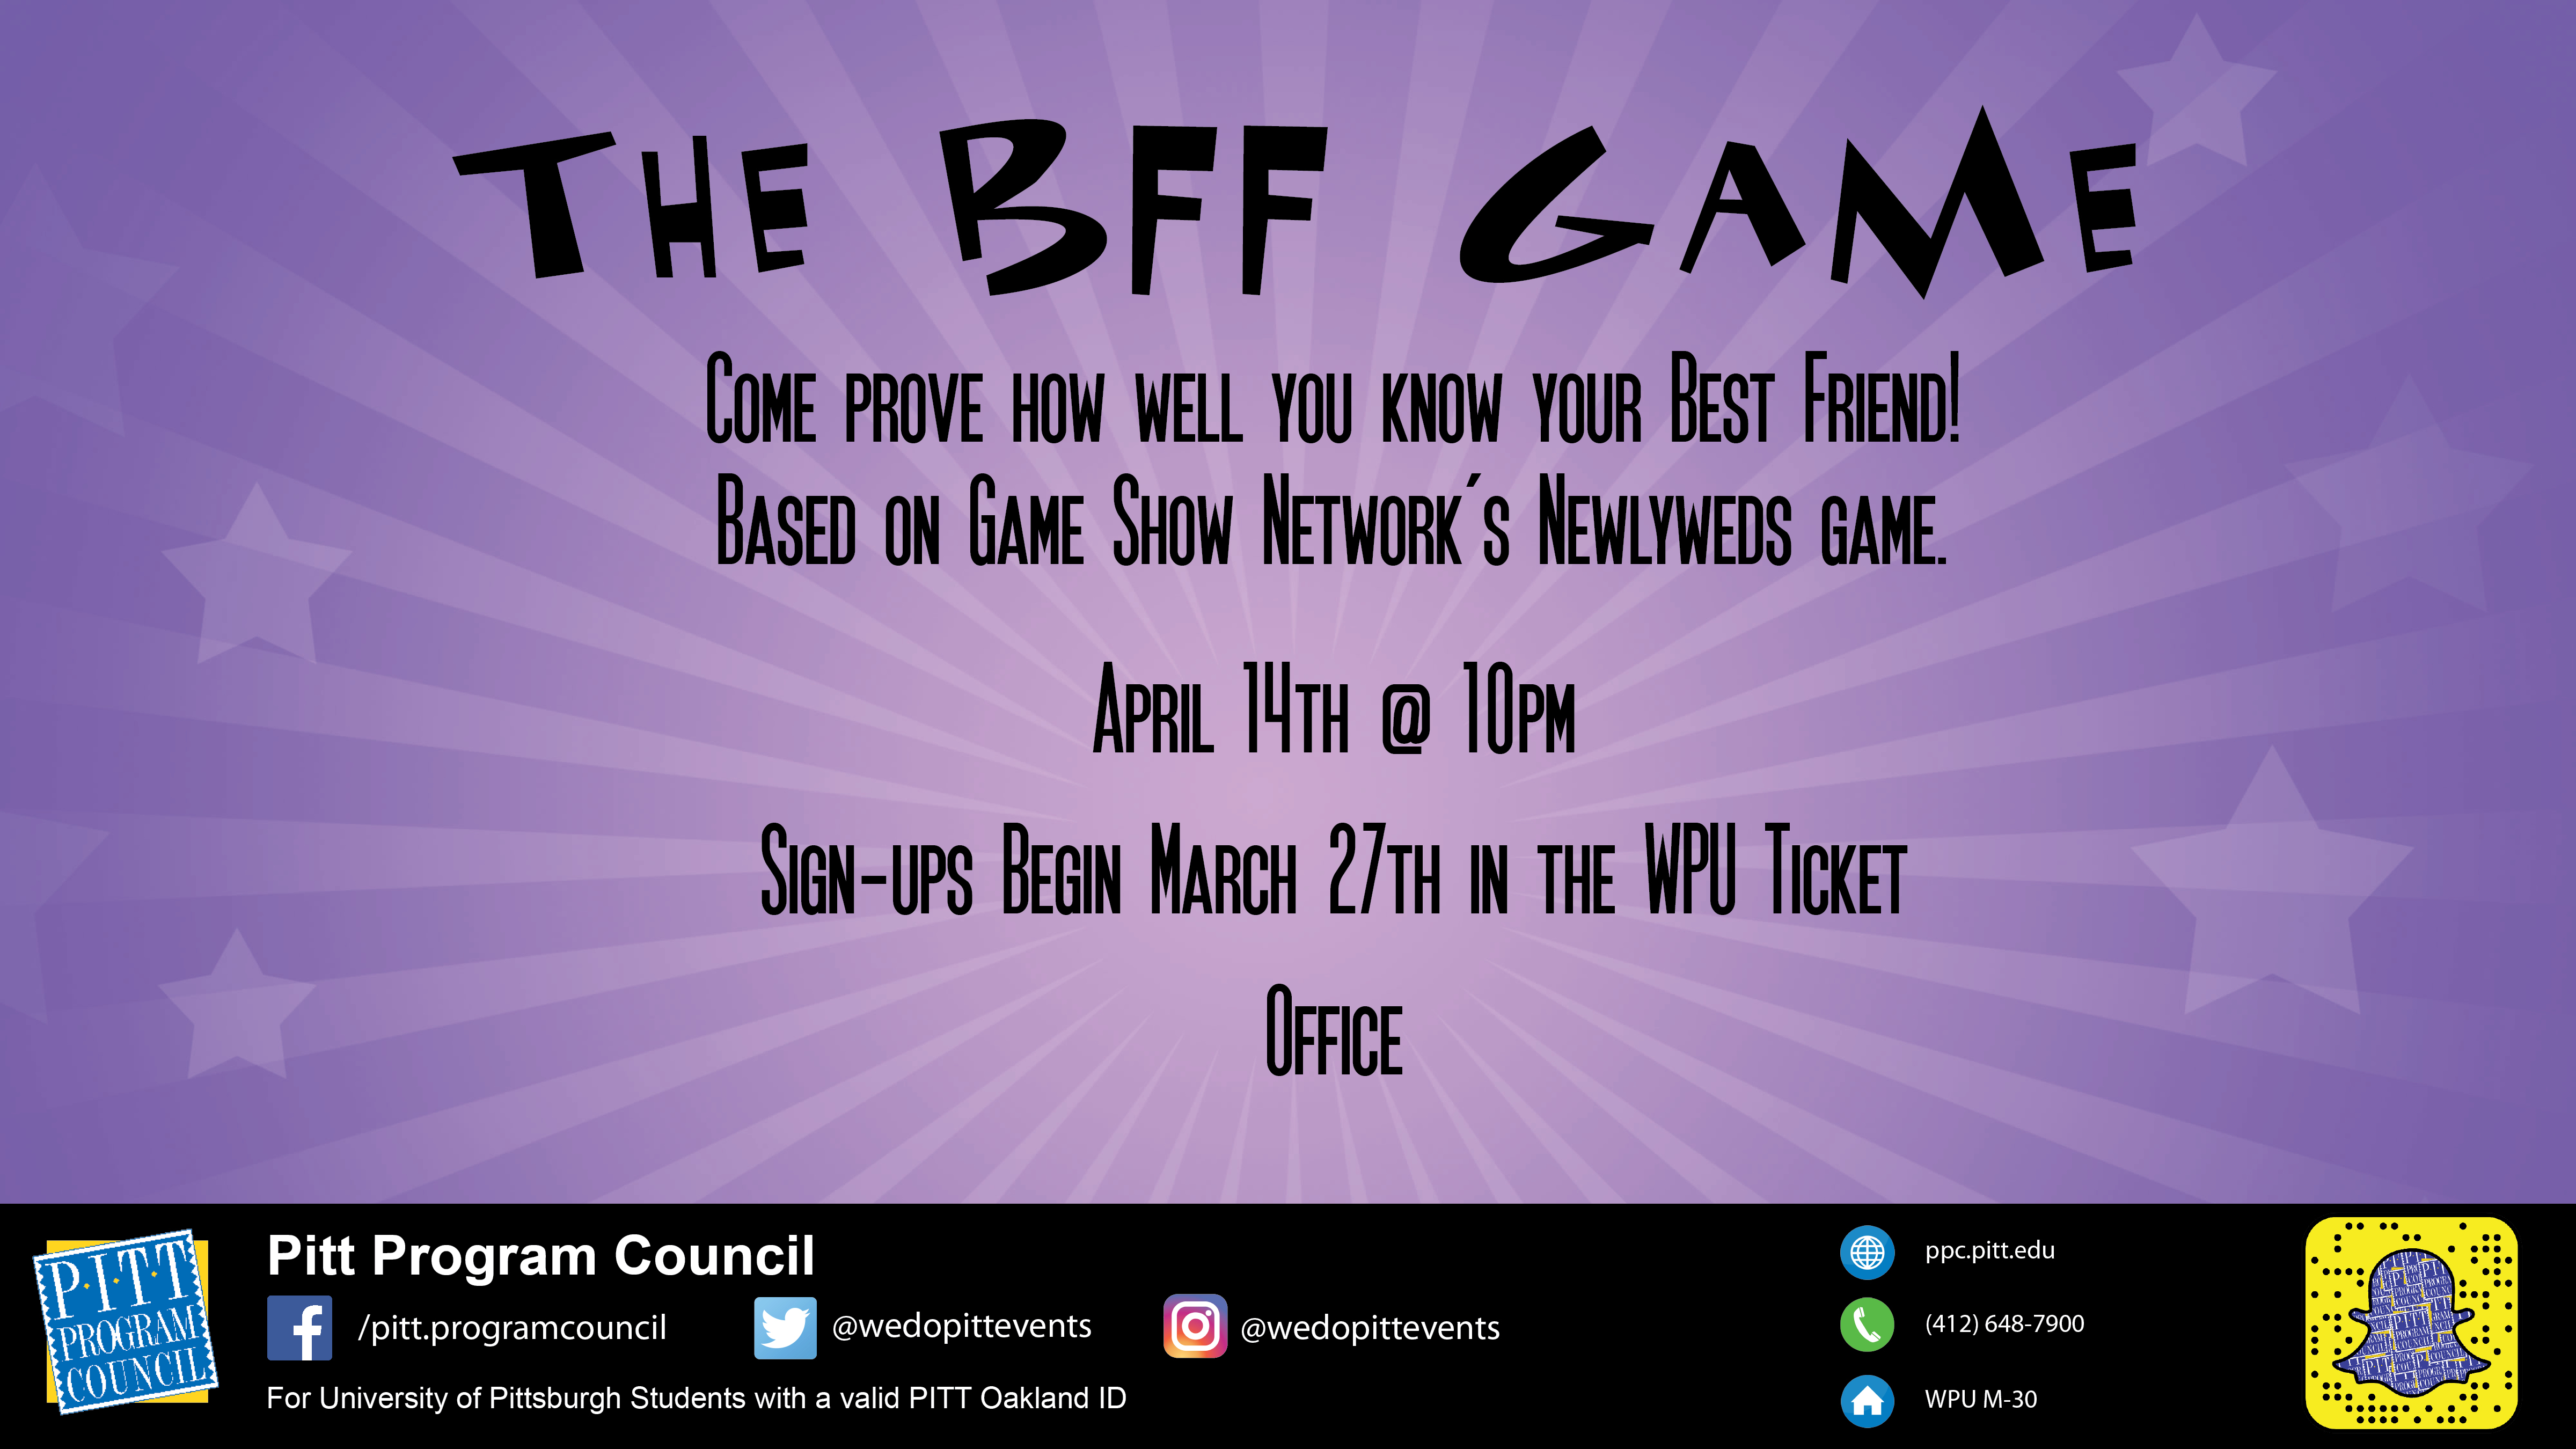 The BFF Game